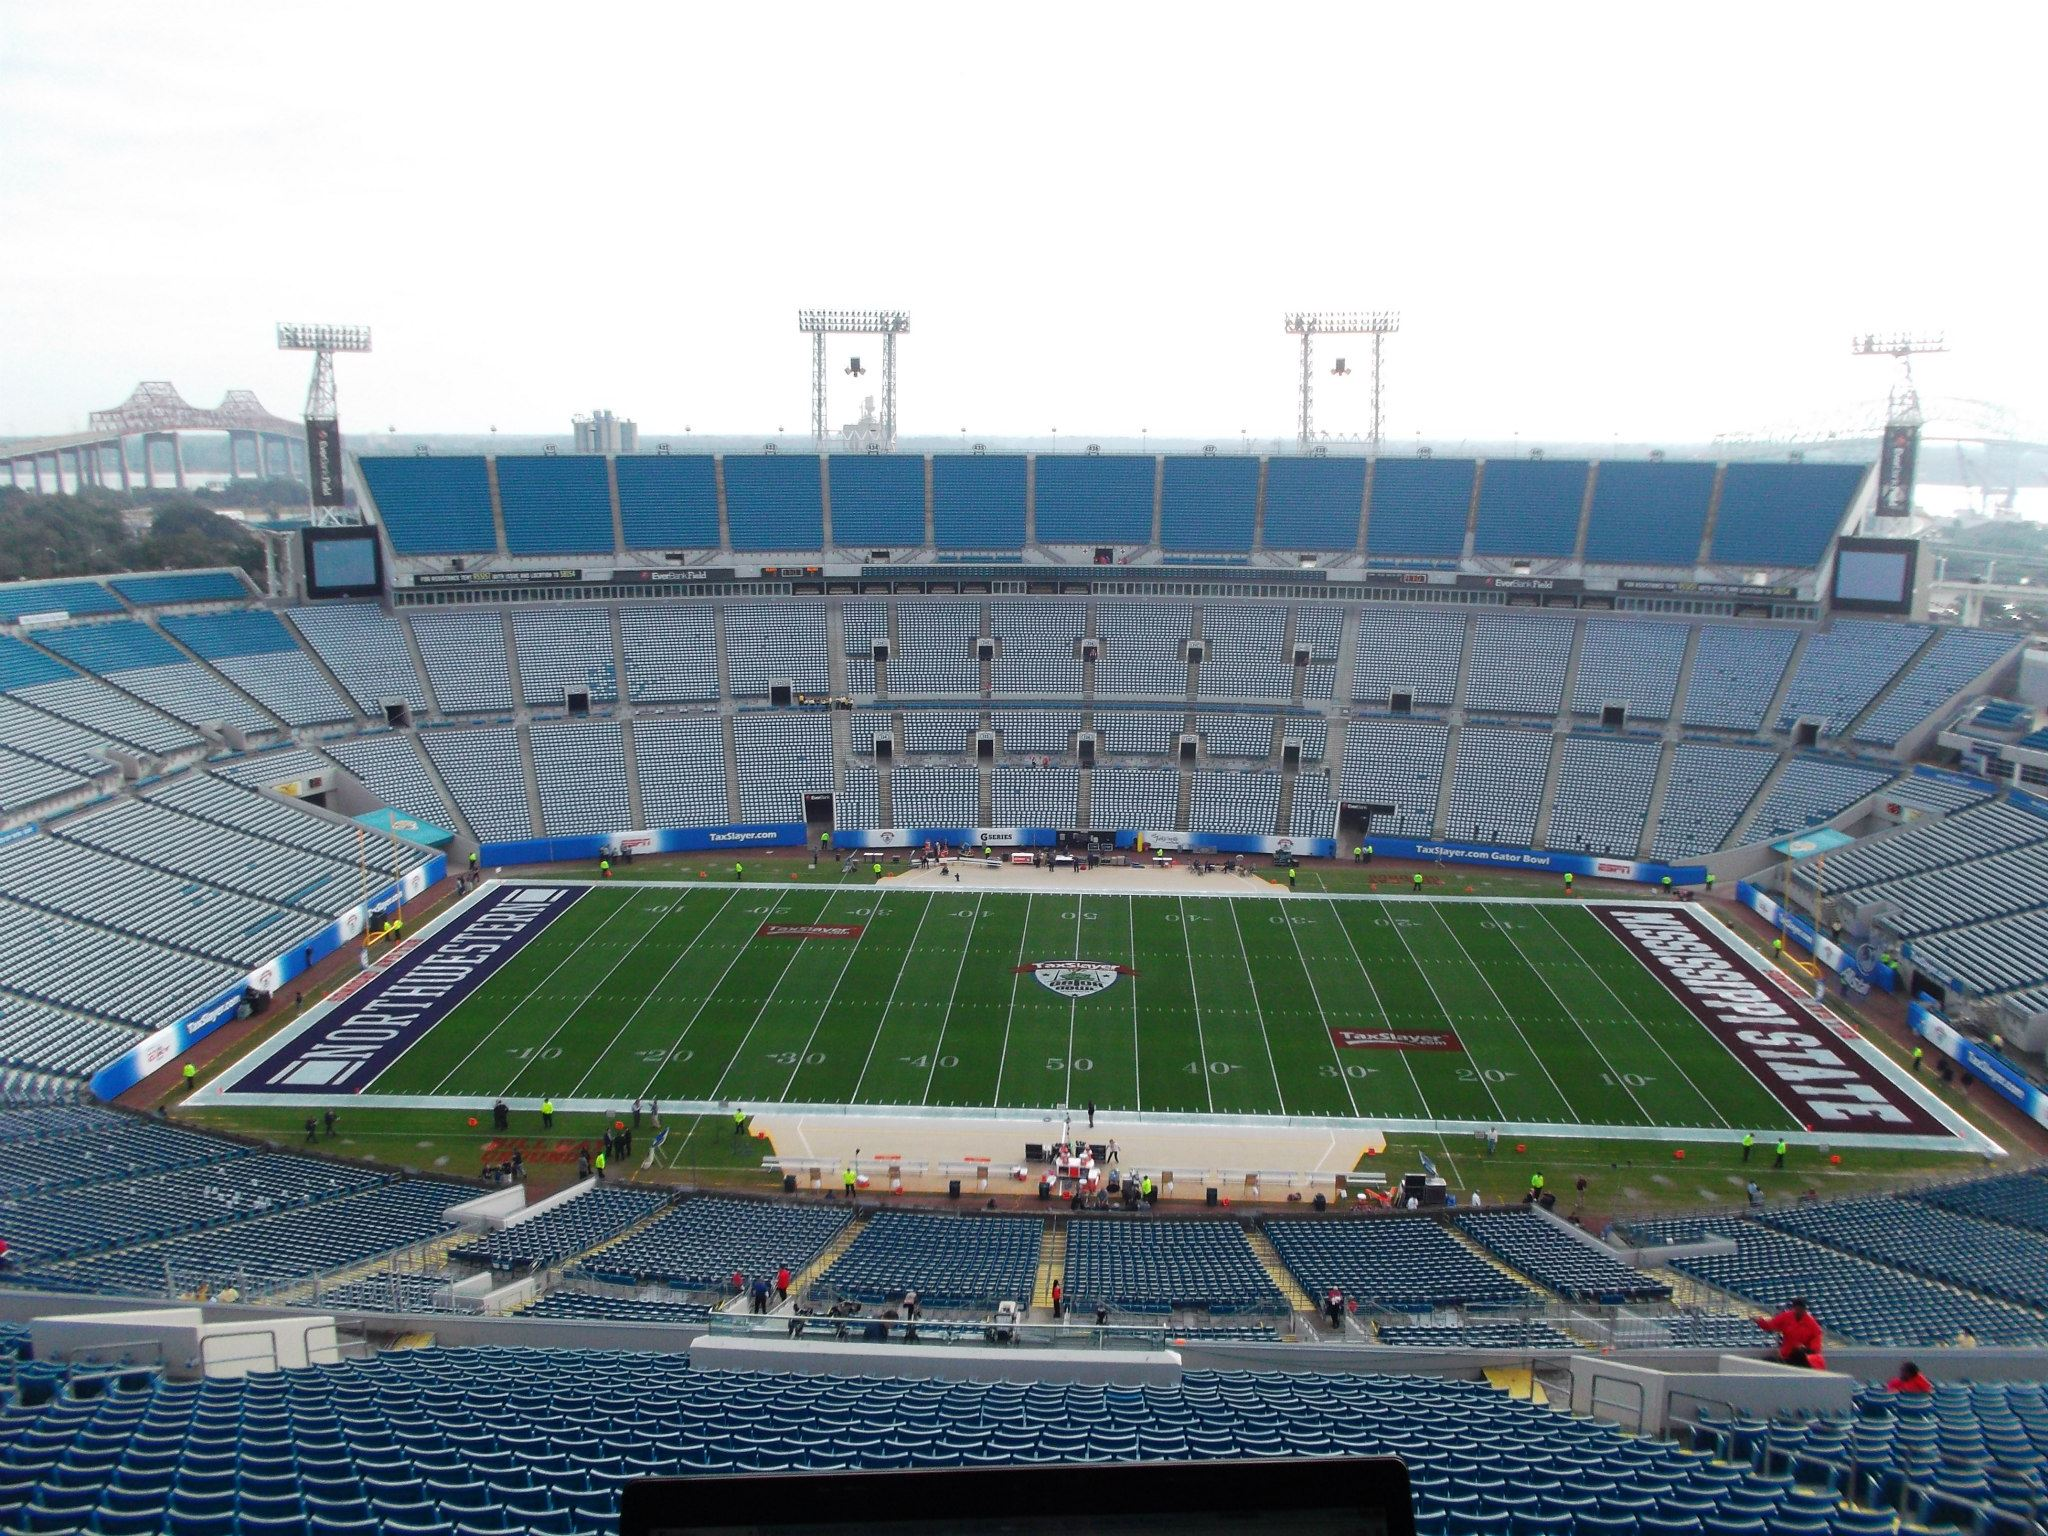 Photo from our press box in Jacksonville. I'm afraid of heights.